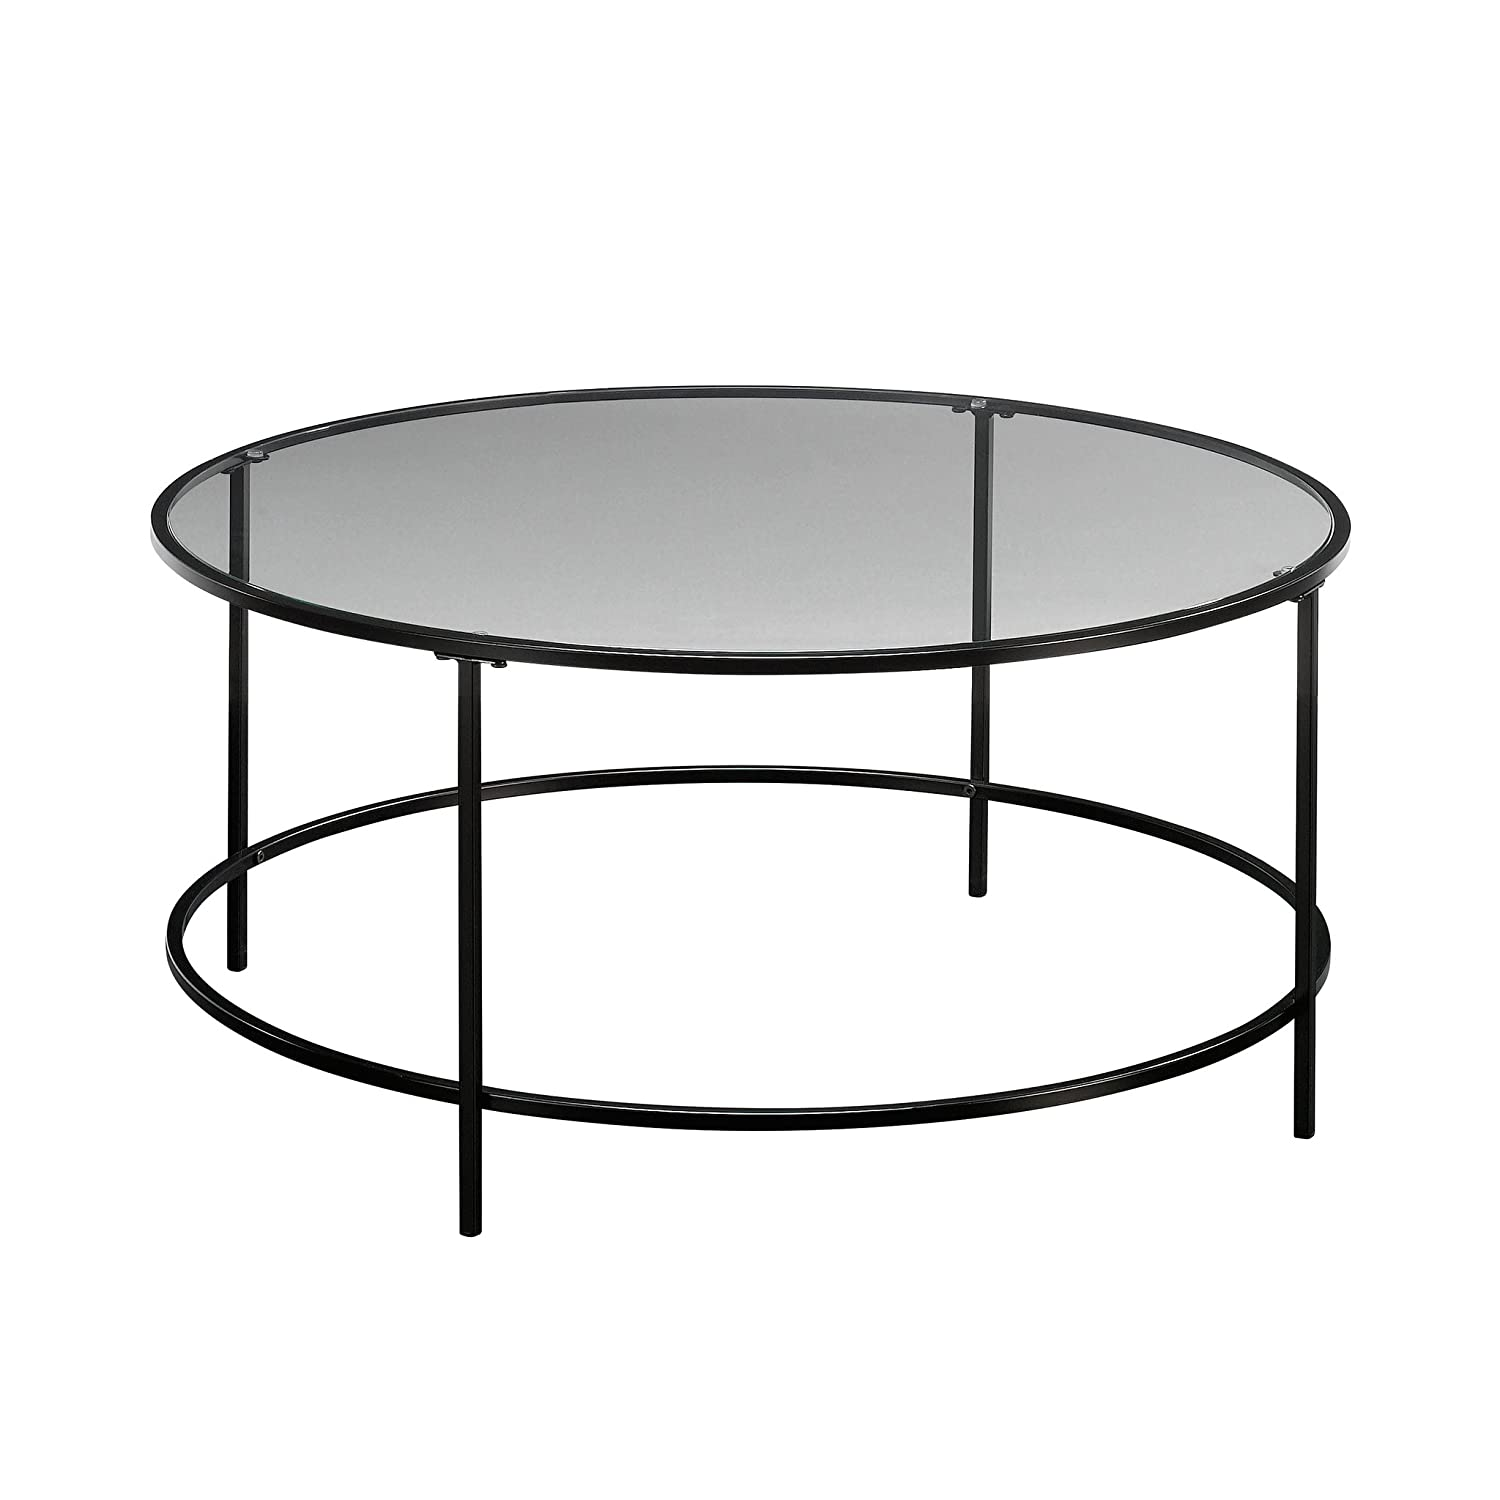 Sauder Soft Modern Round Coffee Table, Black/Clear Glass Sauder Woodworking 414970